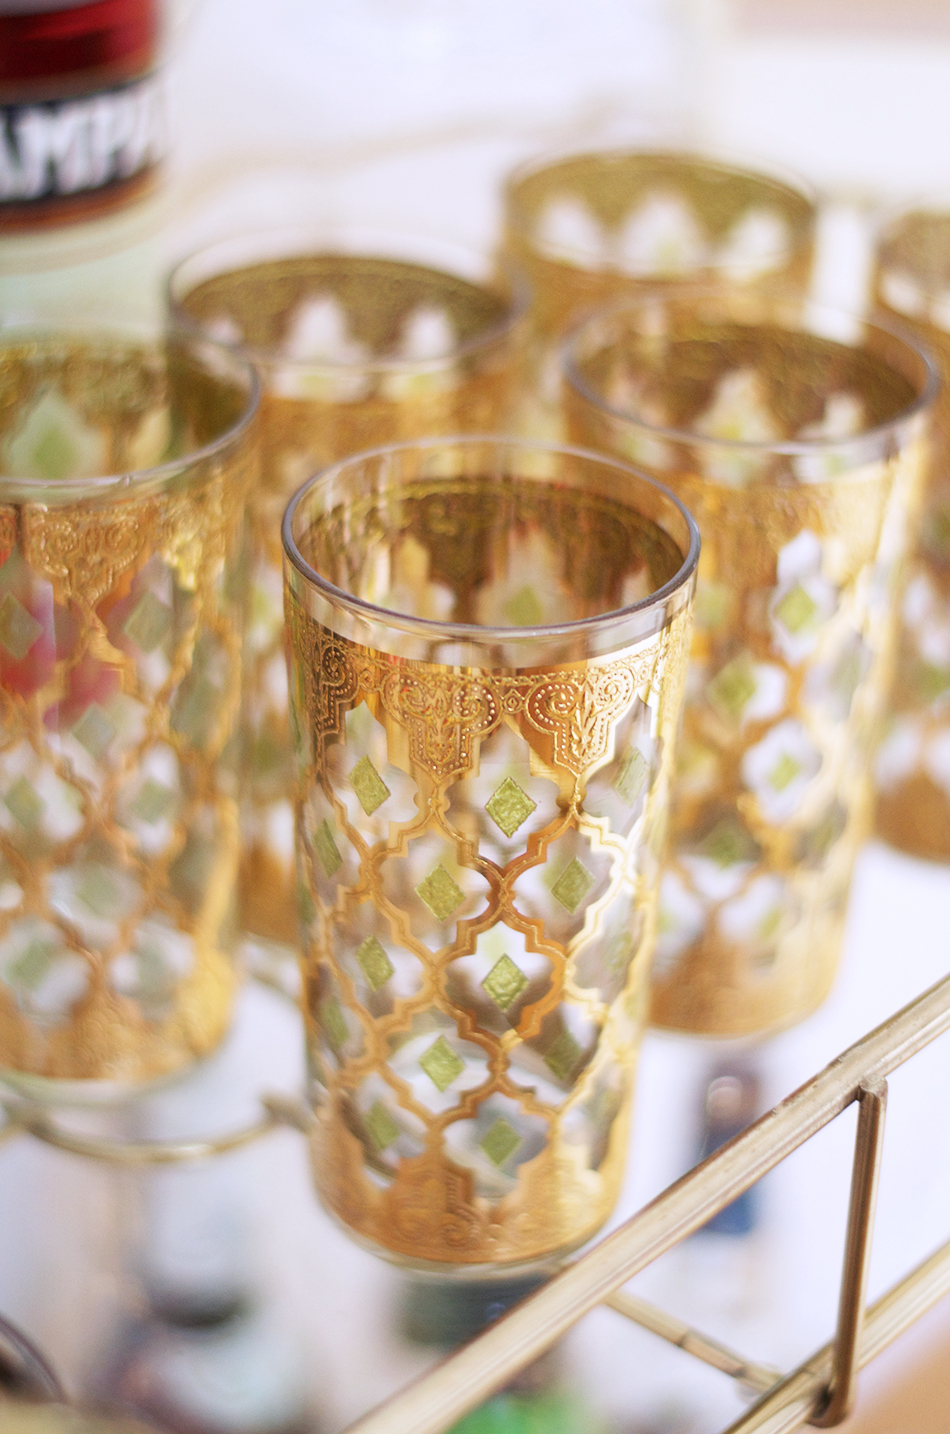 Culver Drinking Glasses